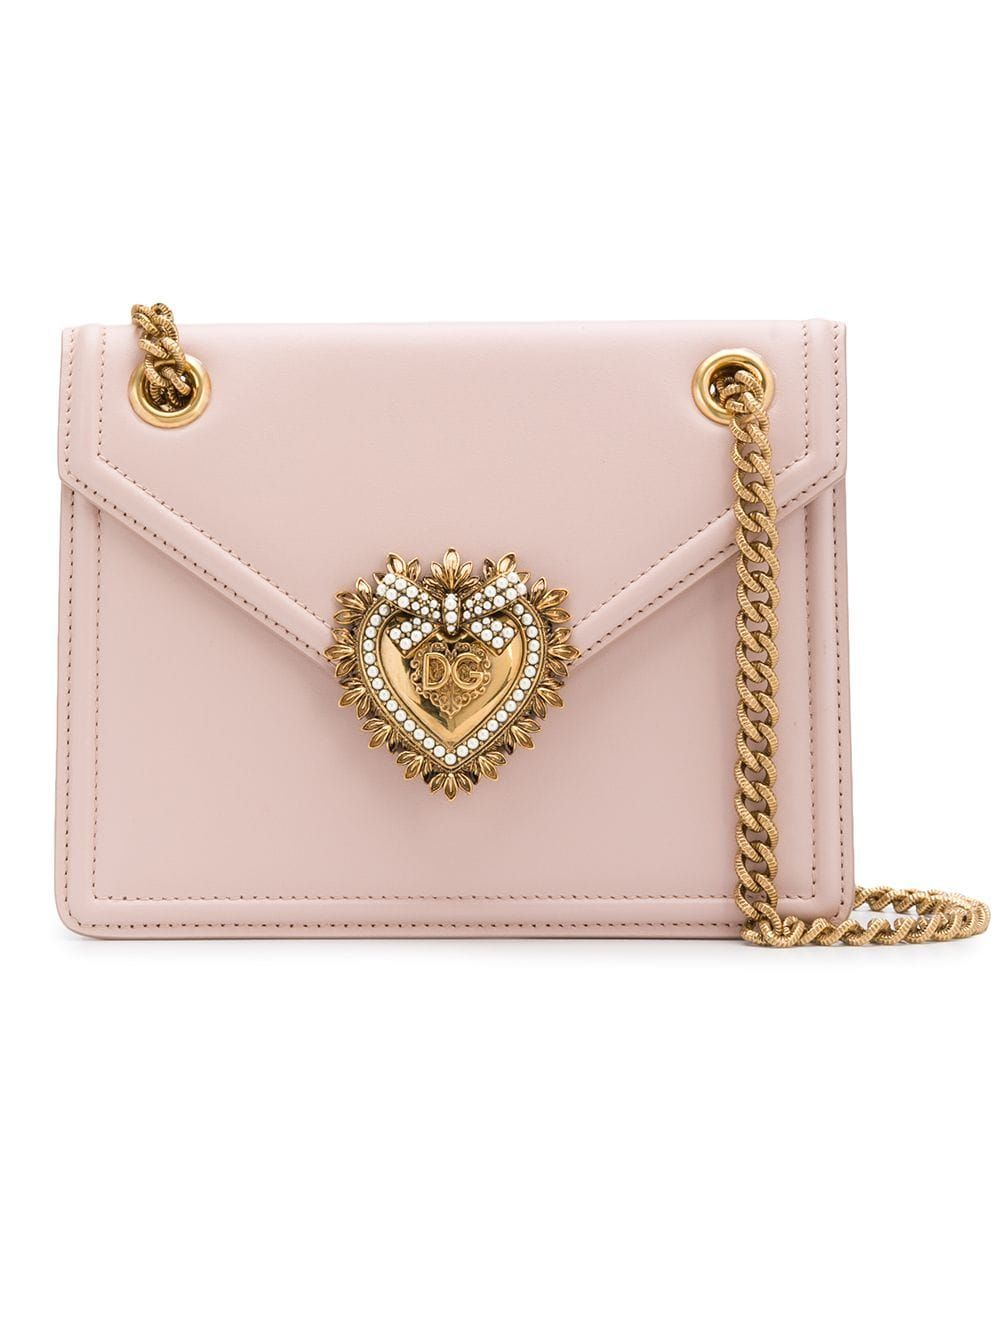 9db4c7ba1f6 Dolce & Gabbana medium Devotion bag - Pink in 2019 | Products | Bags ...